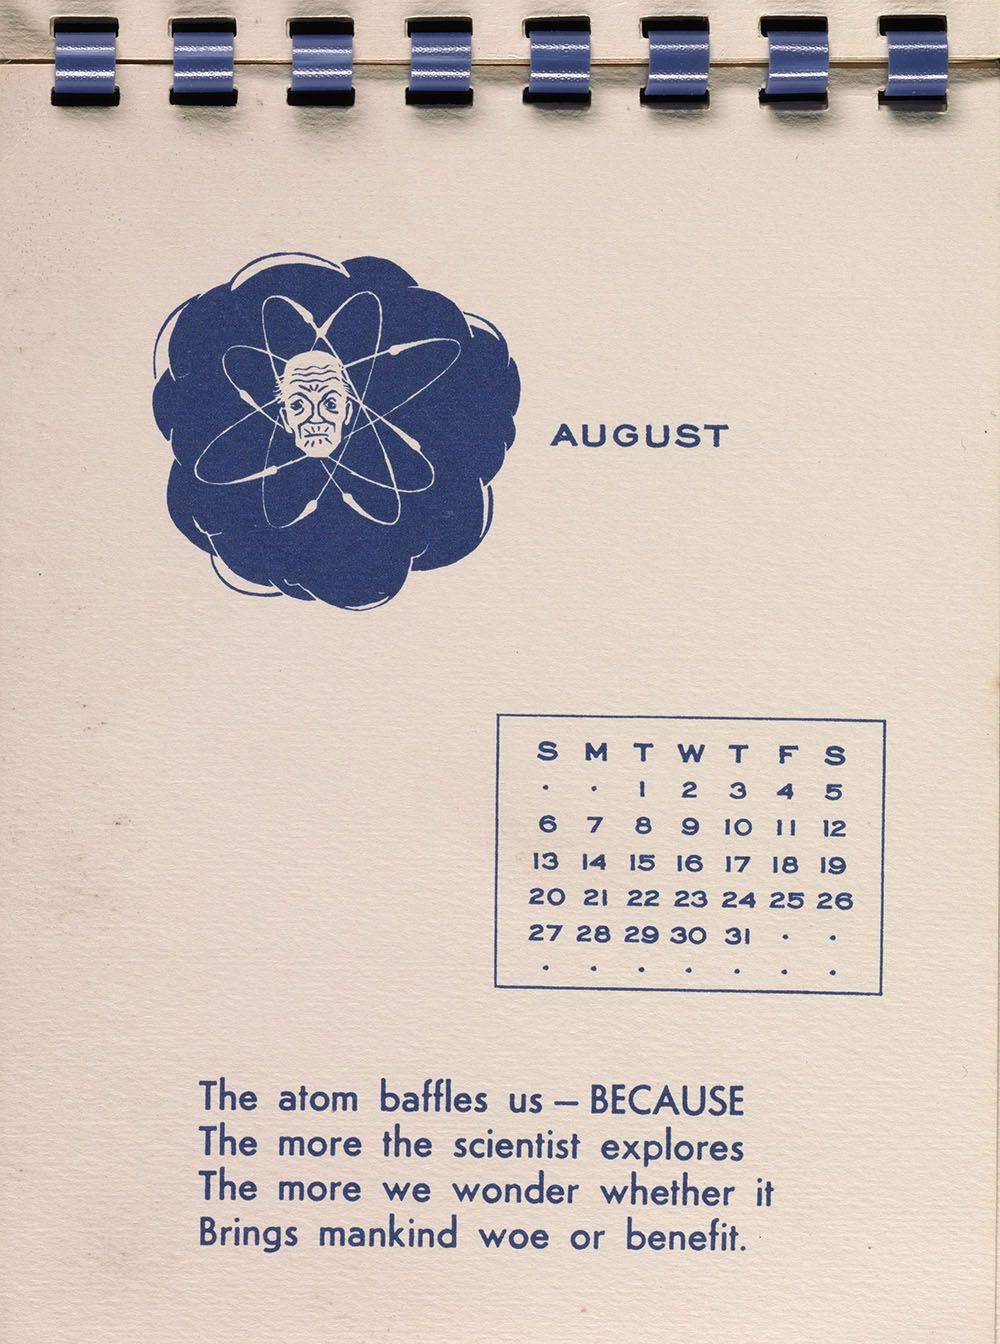 August 1950 page from William Adams Delano holiday card